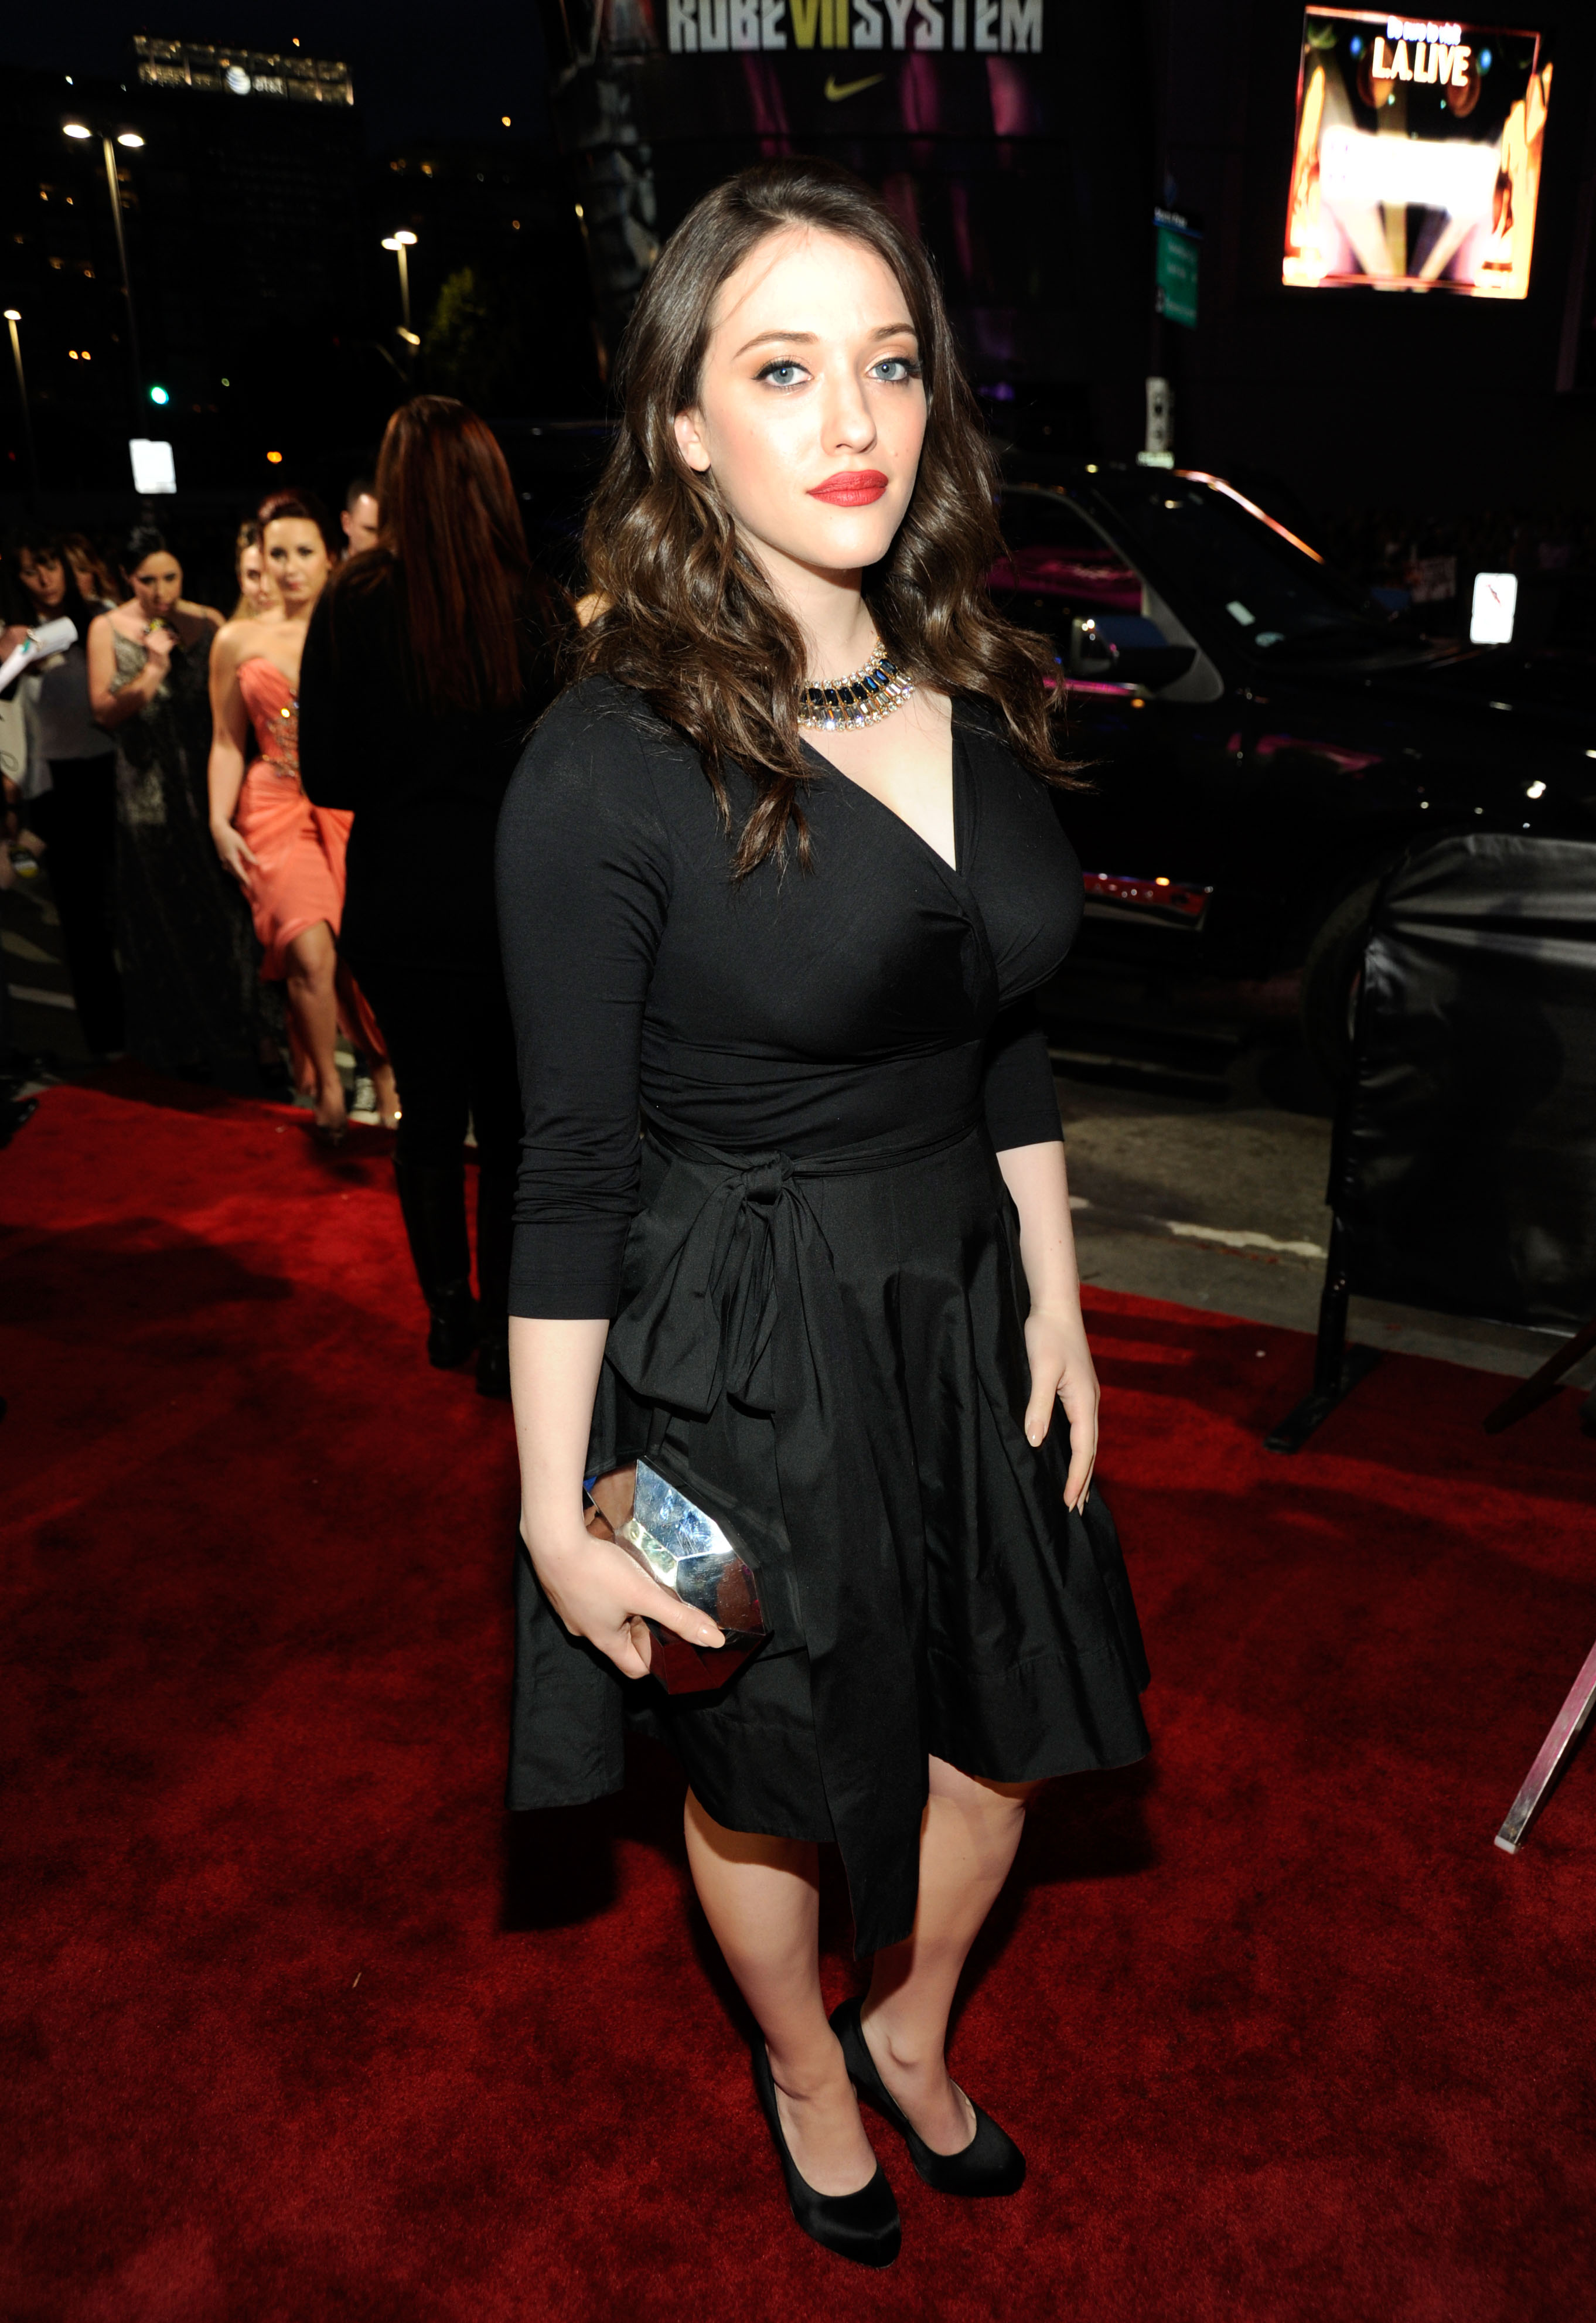 Kat Dennings in black at the People's Choice Awards.